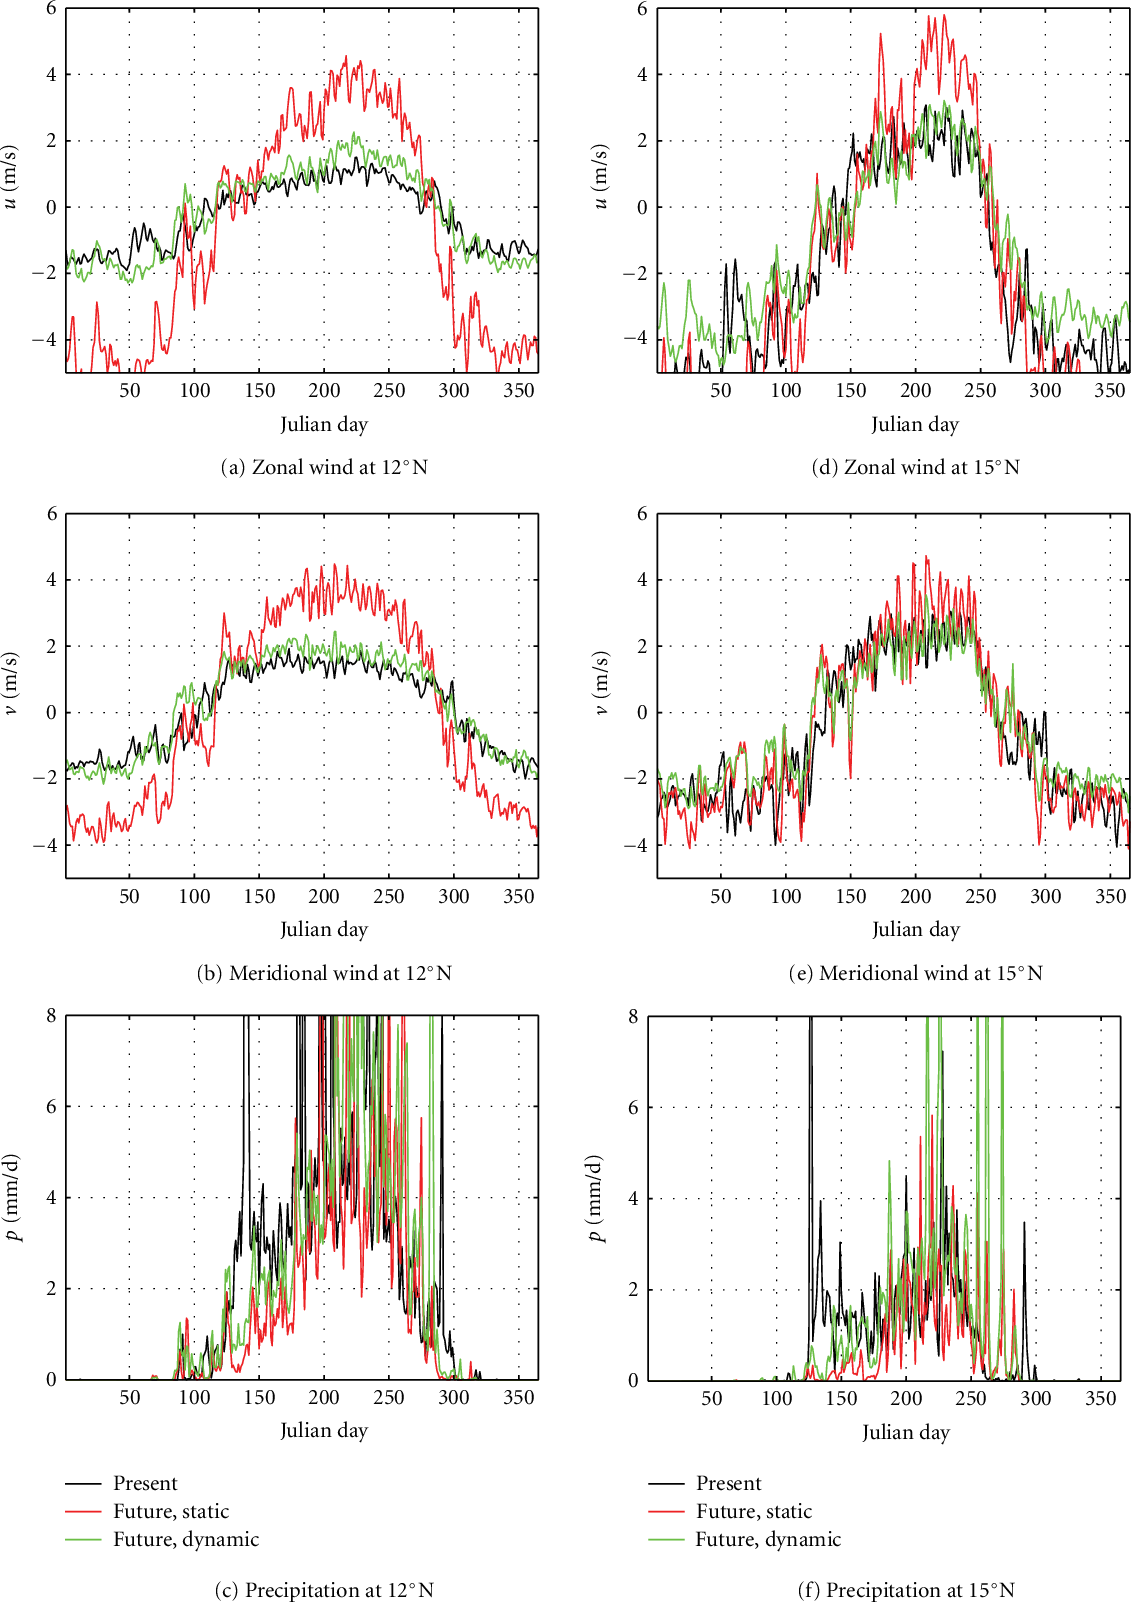 Figure 5: Climatology of daily wind and daily rainfall at 12◦N and 15◦N, averaged over 5◦W-5◦E.